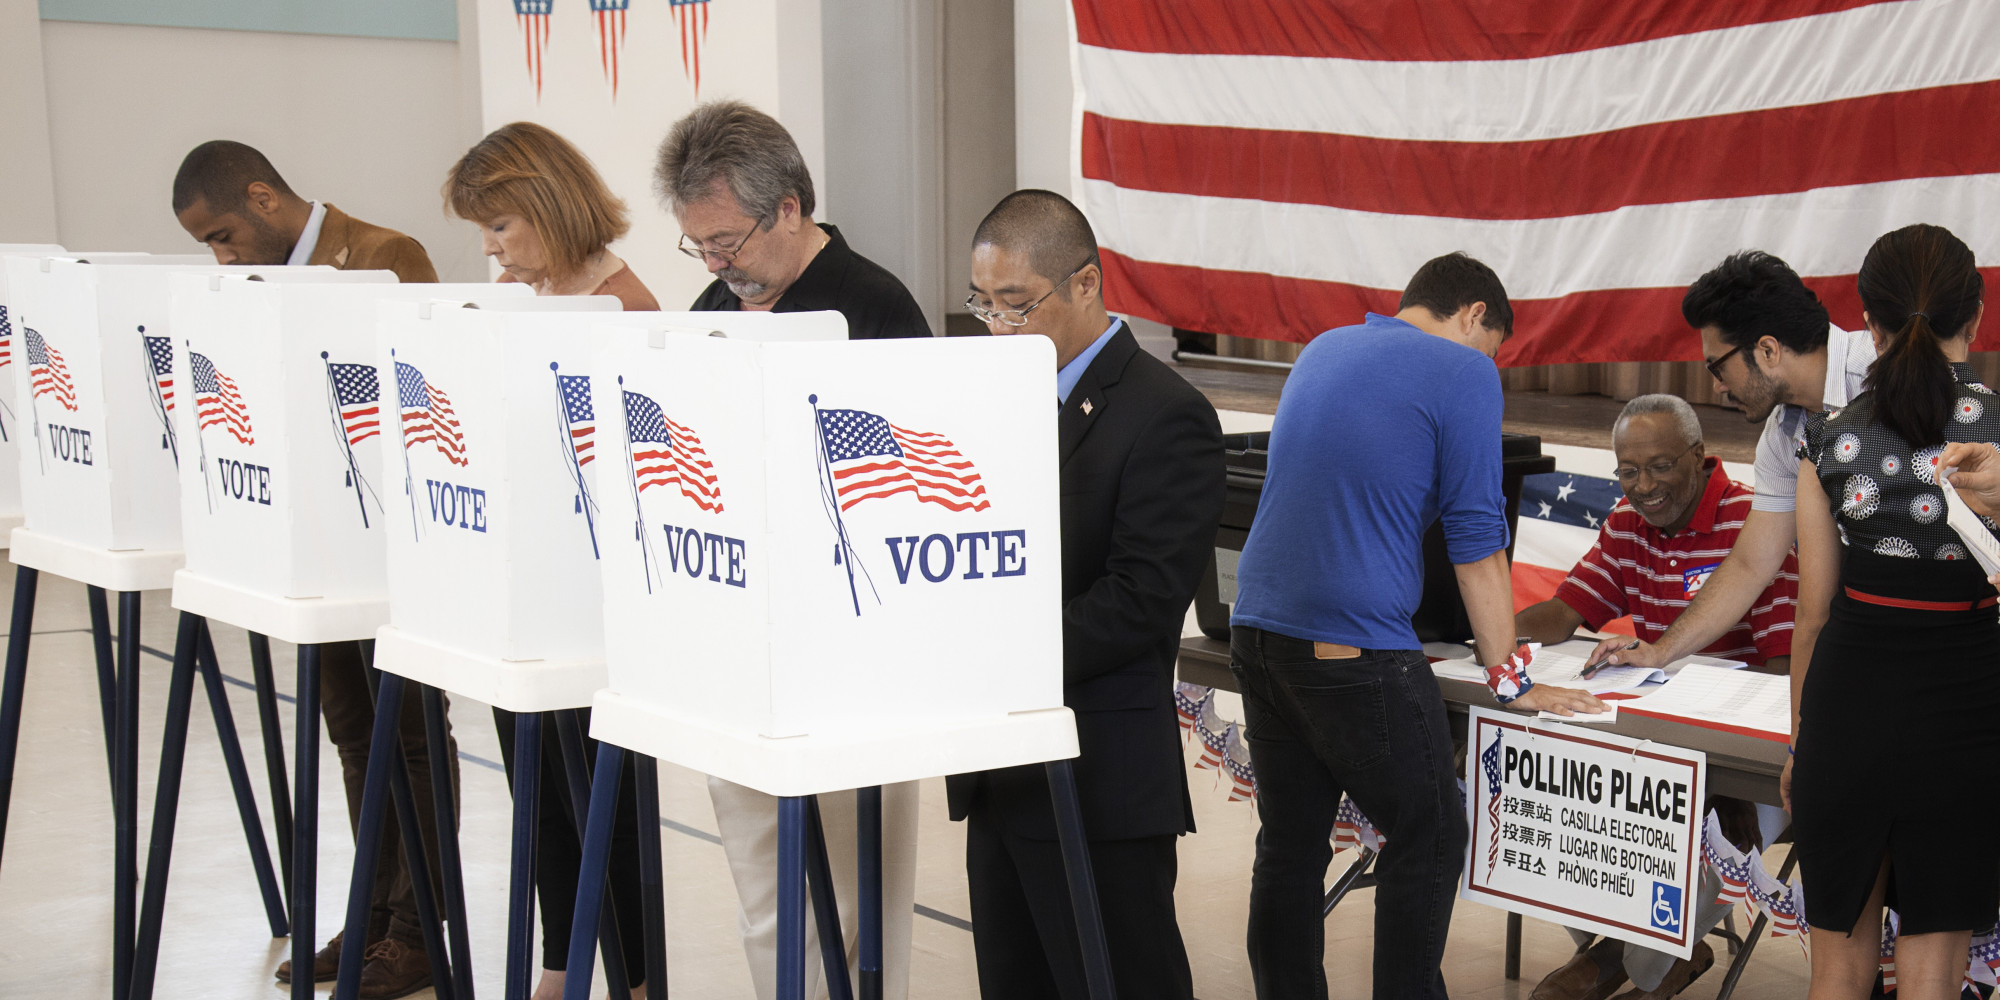 GC Executive Committee adds itself to US presidential ballot